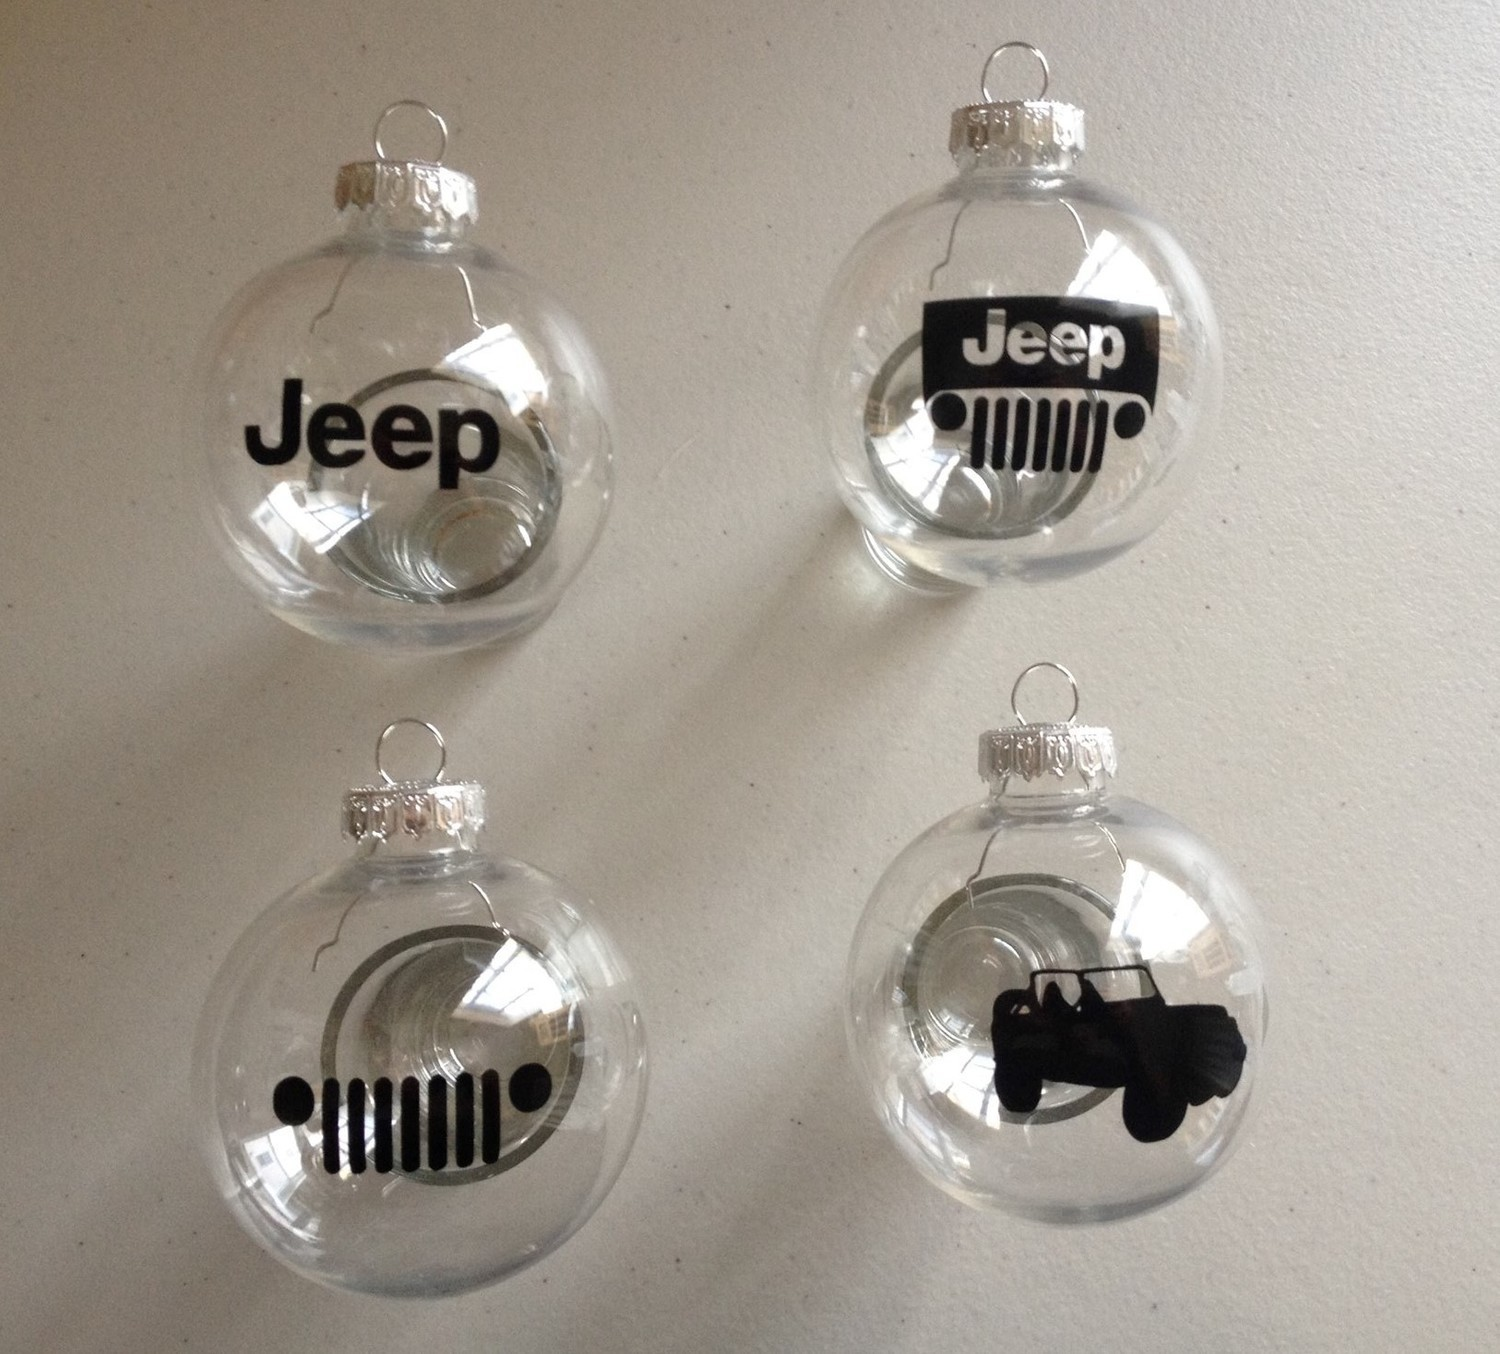 Jeep Christmas Ornament.Christmas Tree Ornaments